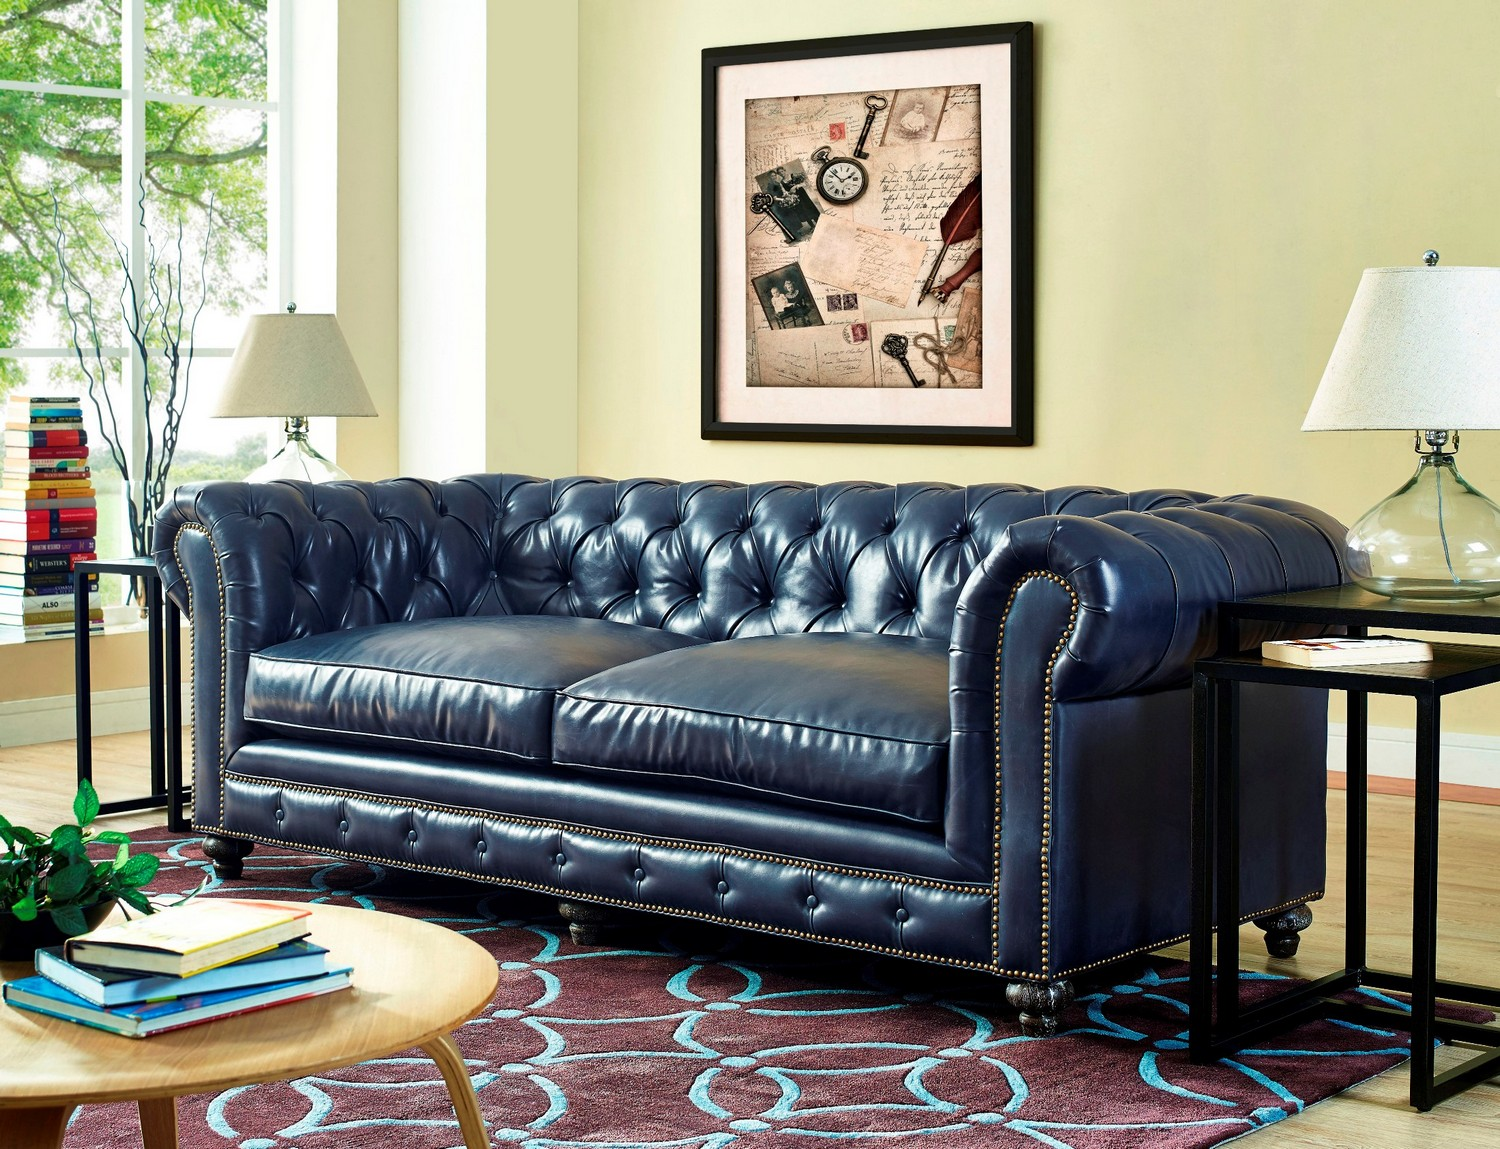 Attirant TOV Furniture Durango Rustic Blue Leather Sofa